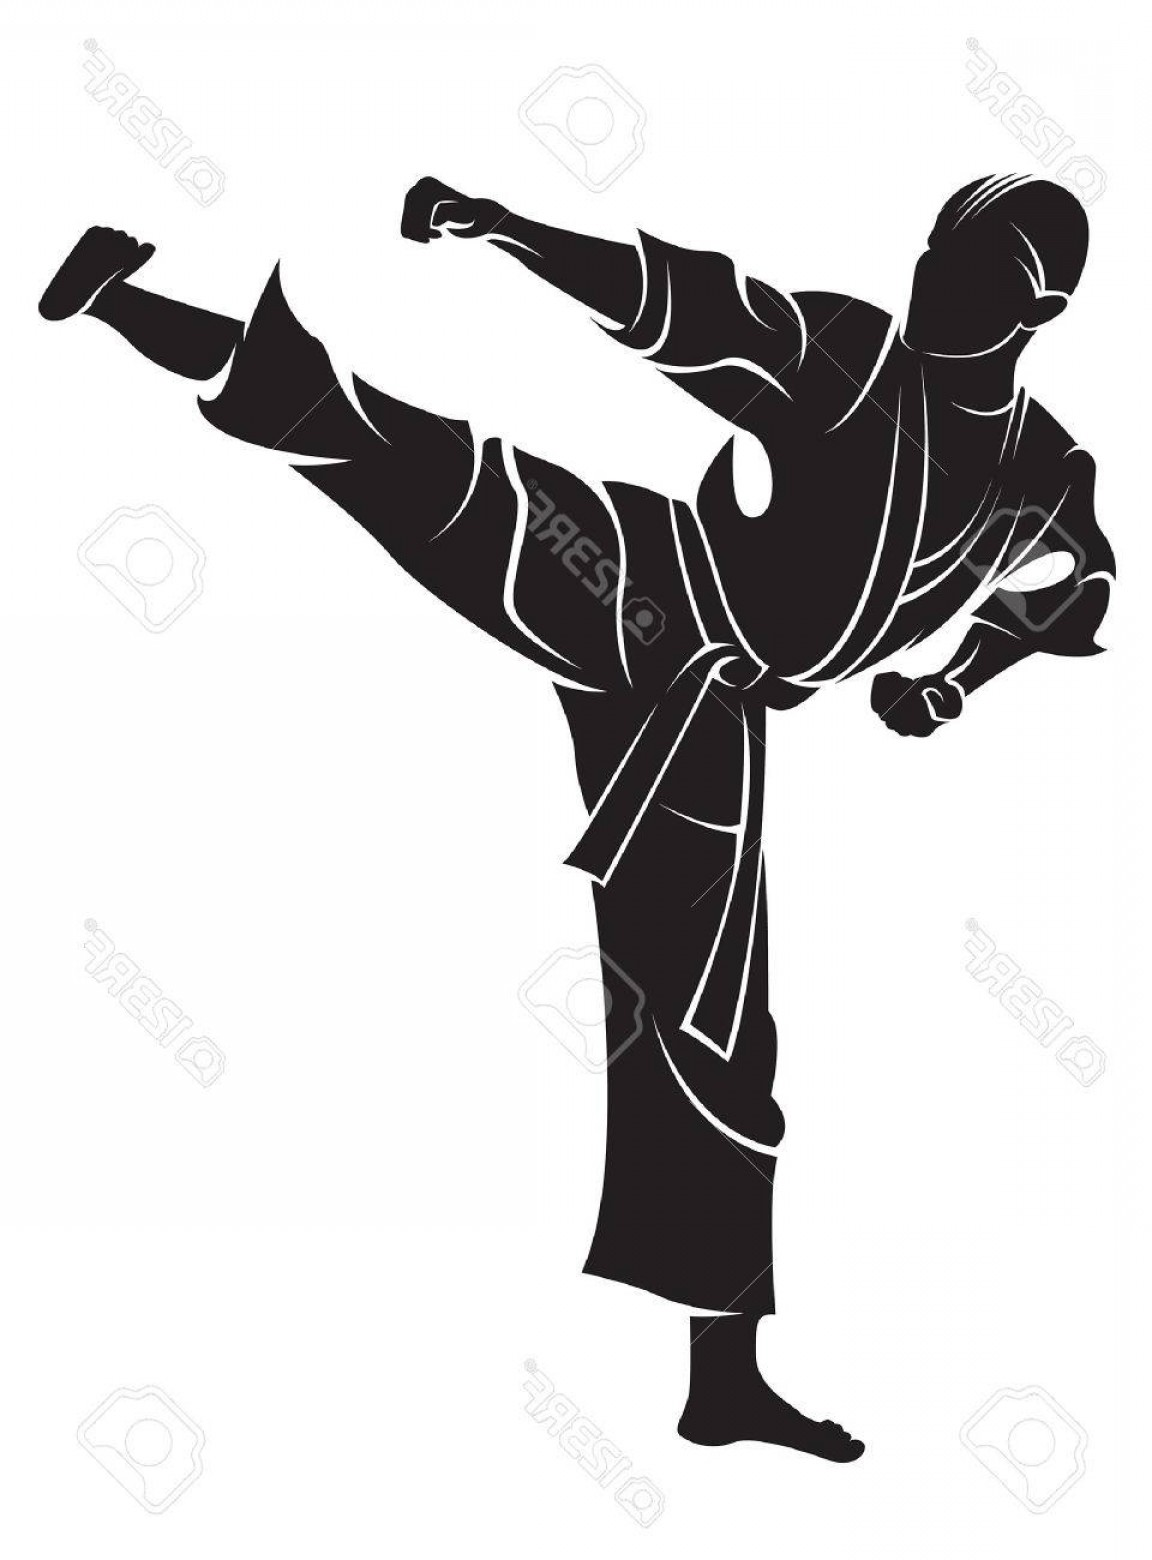 Karate Vector: Photostock Vector Karate Fighter Vector Silhouette Isolated On White